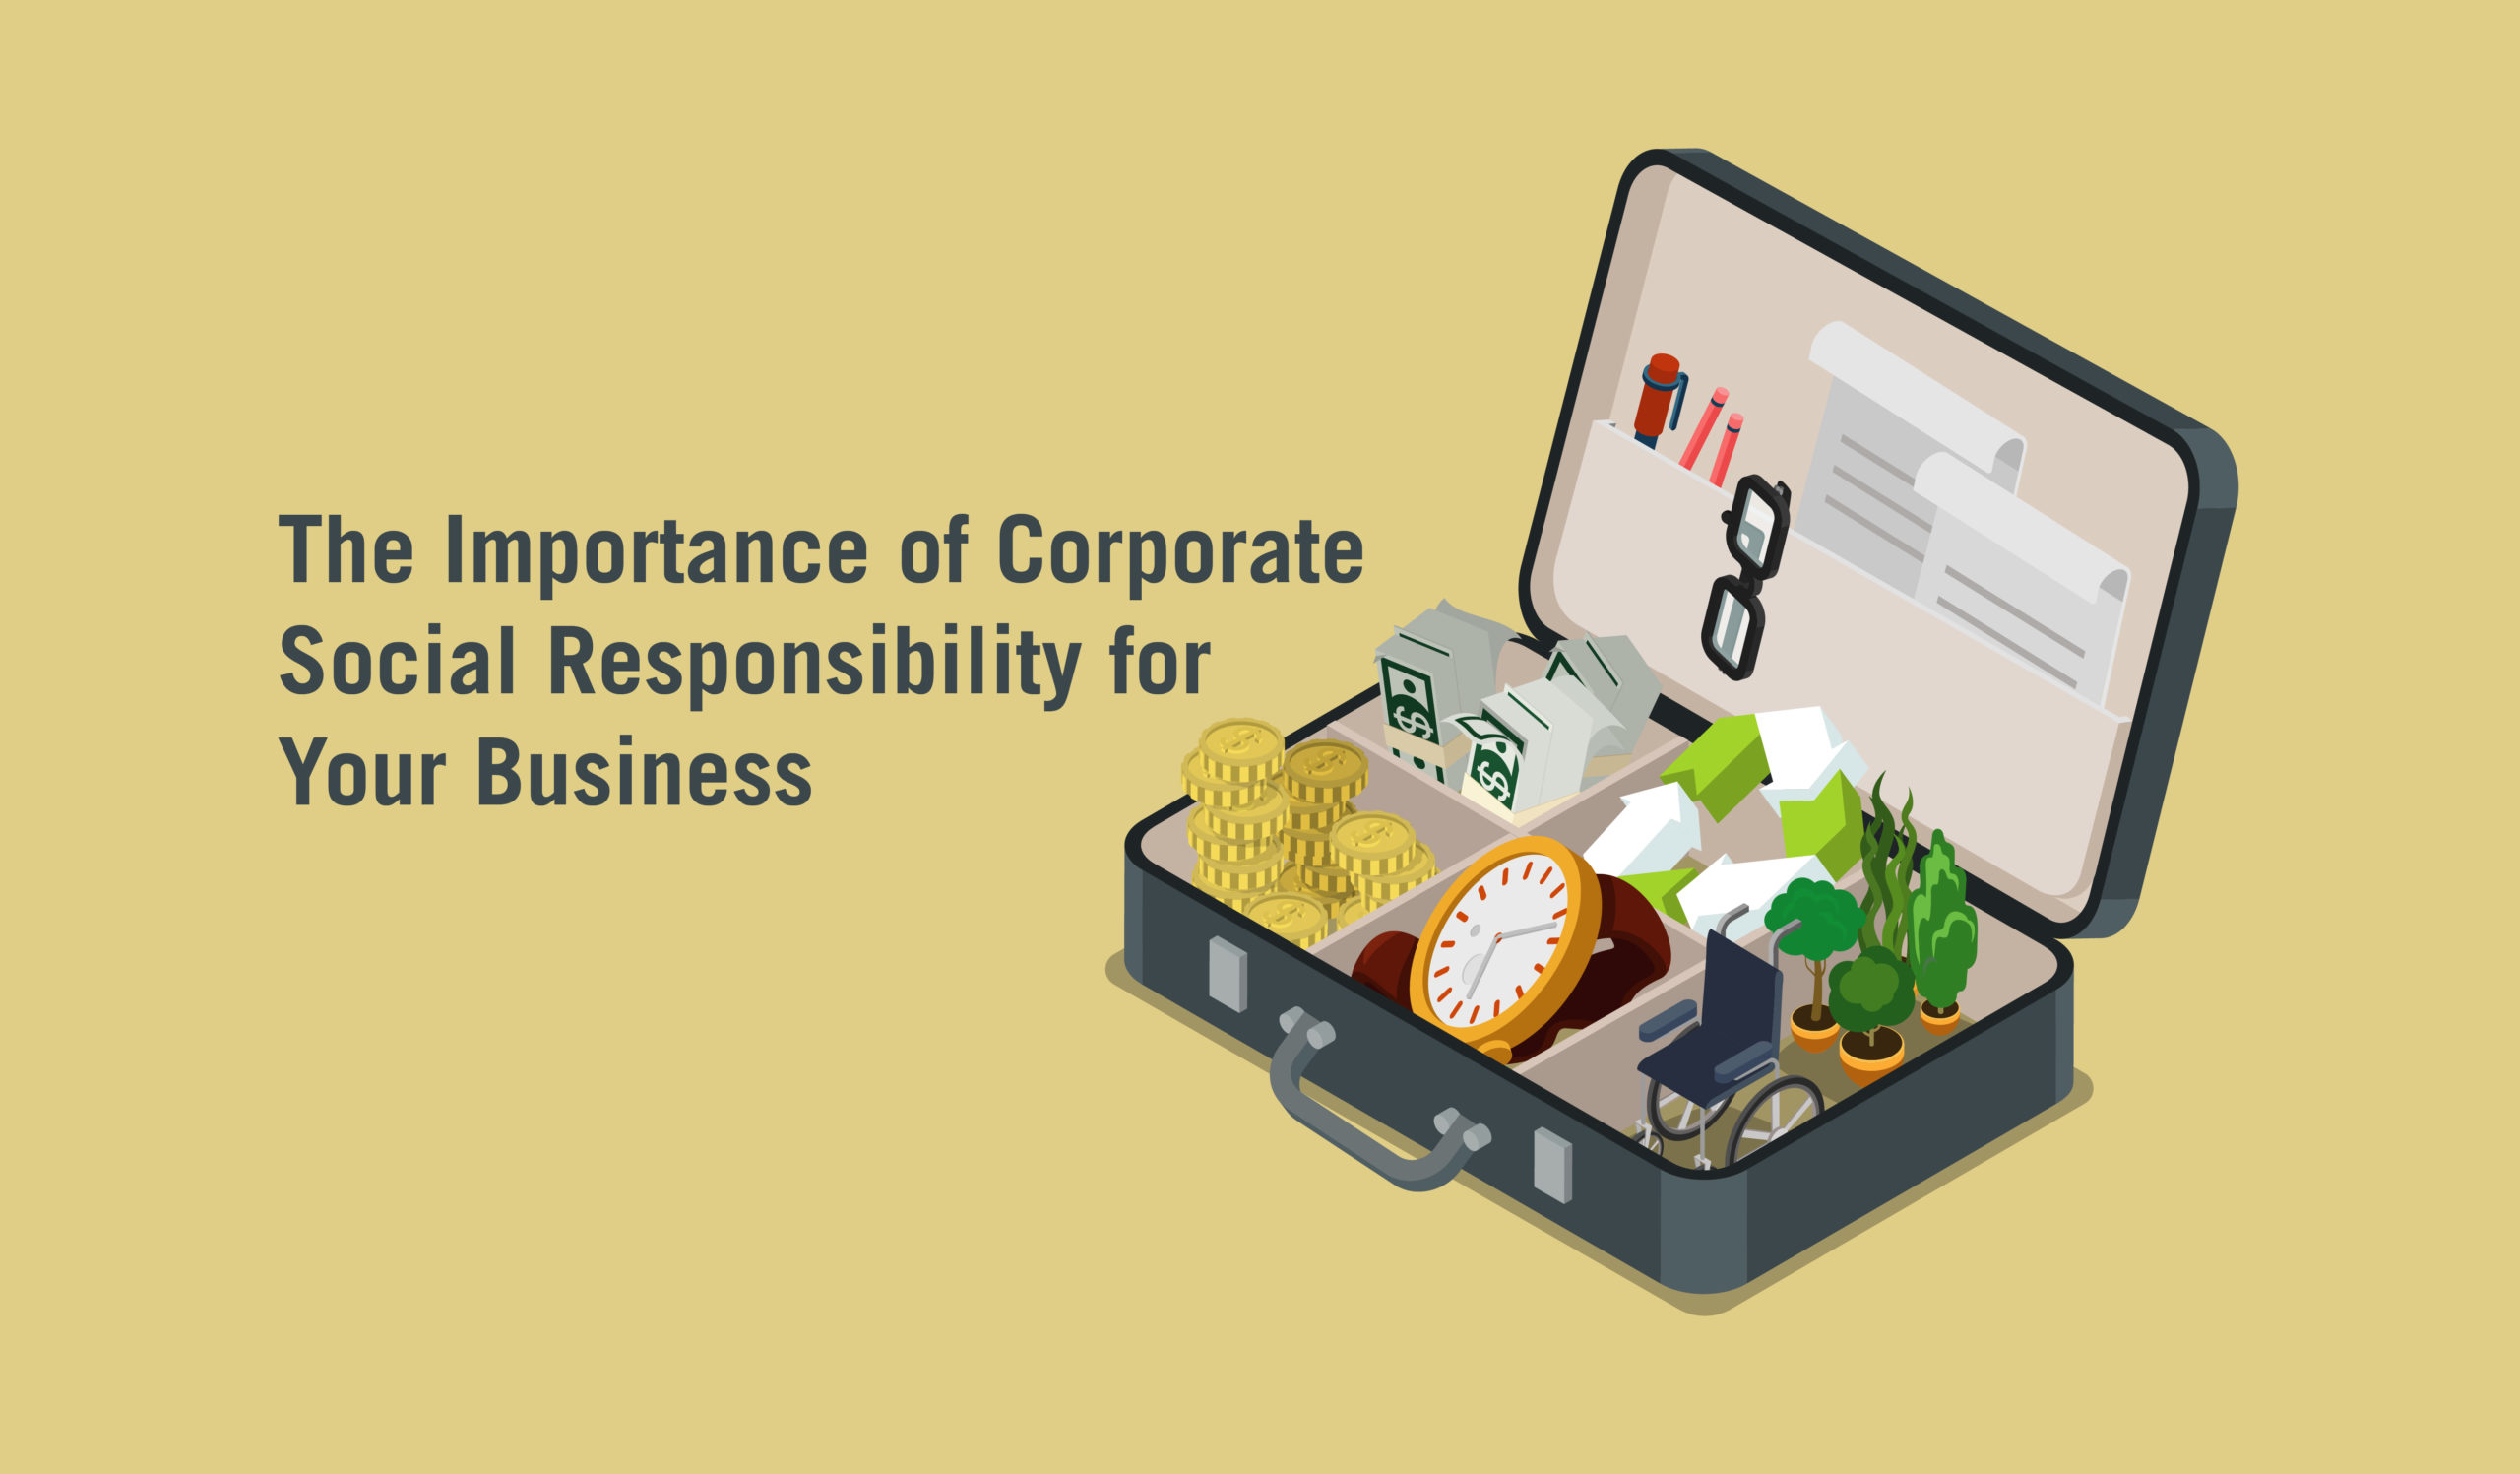 Why doing CSR is important in business